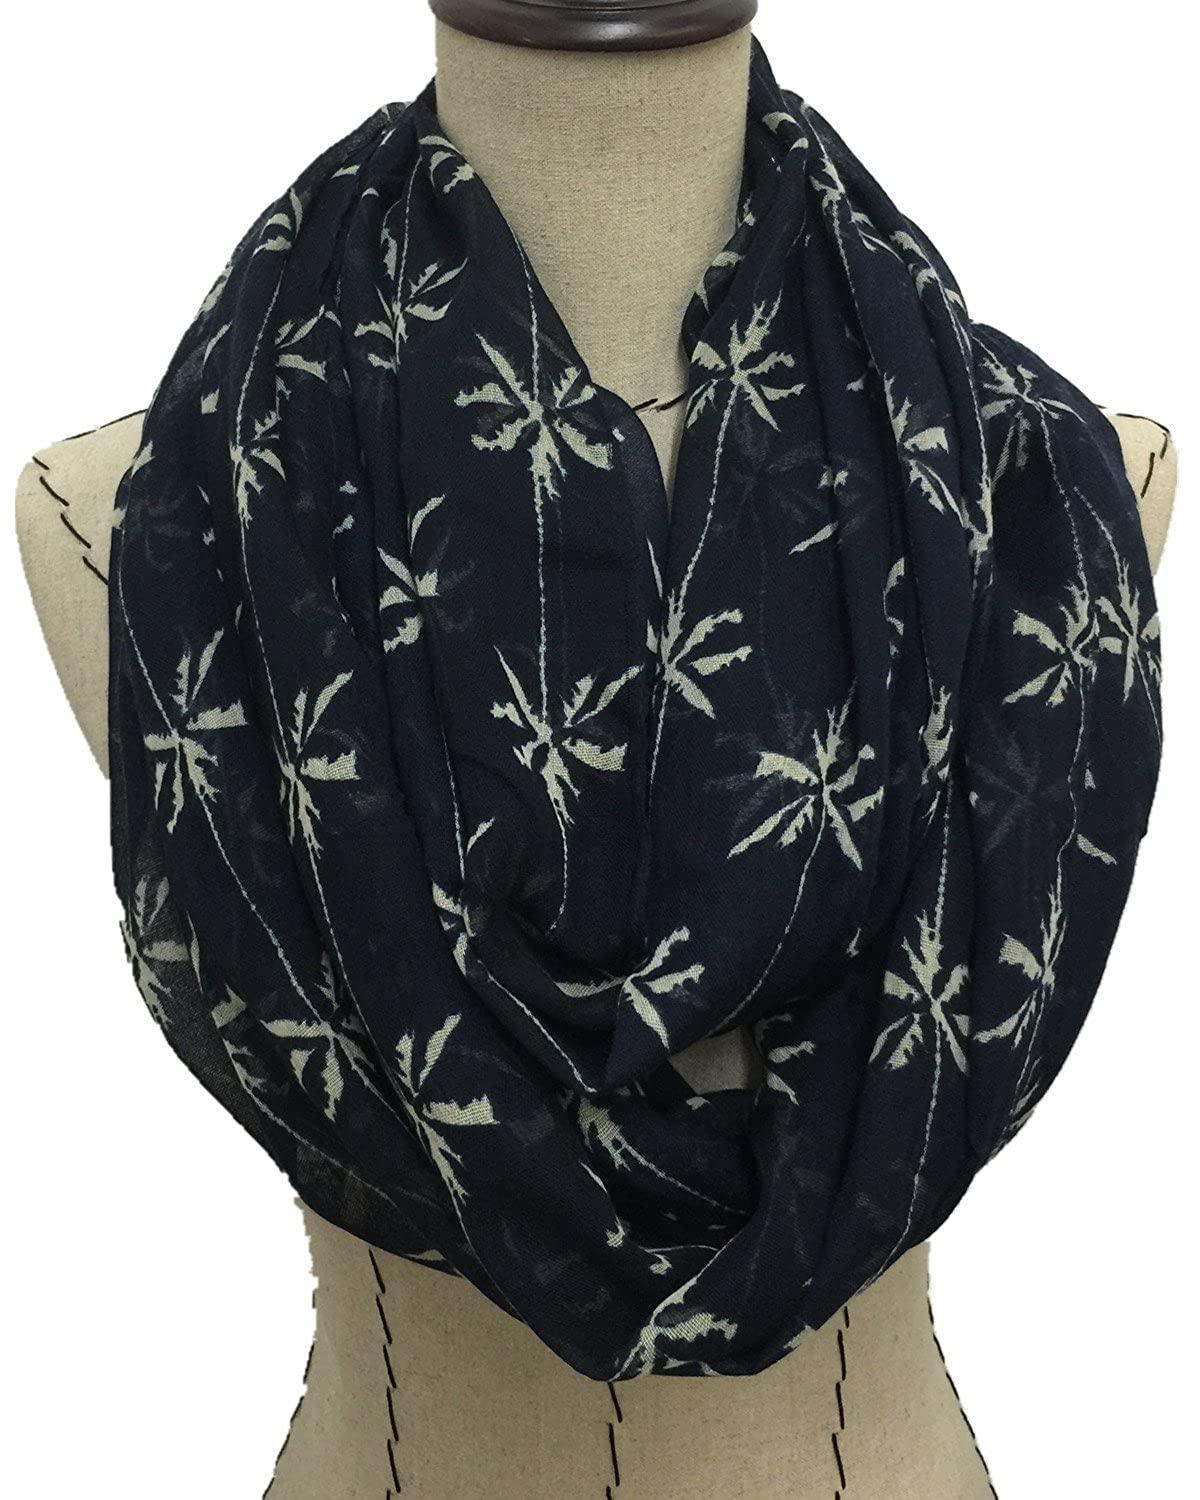 LEAVES SCARF INFINITY STYLE S2-09 NAVY BLUE